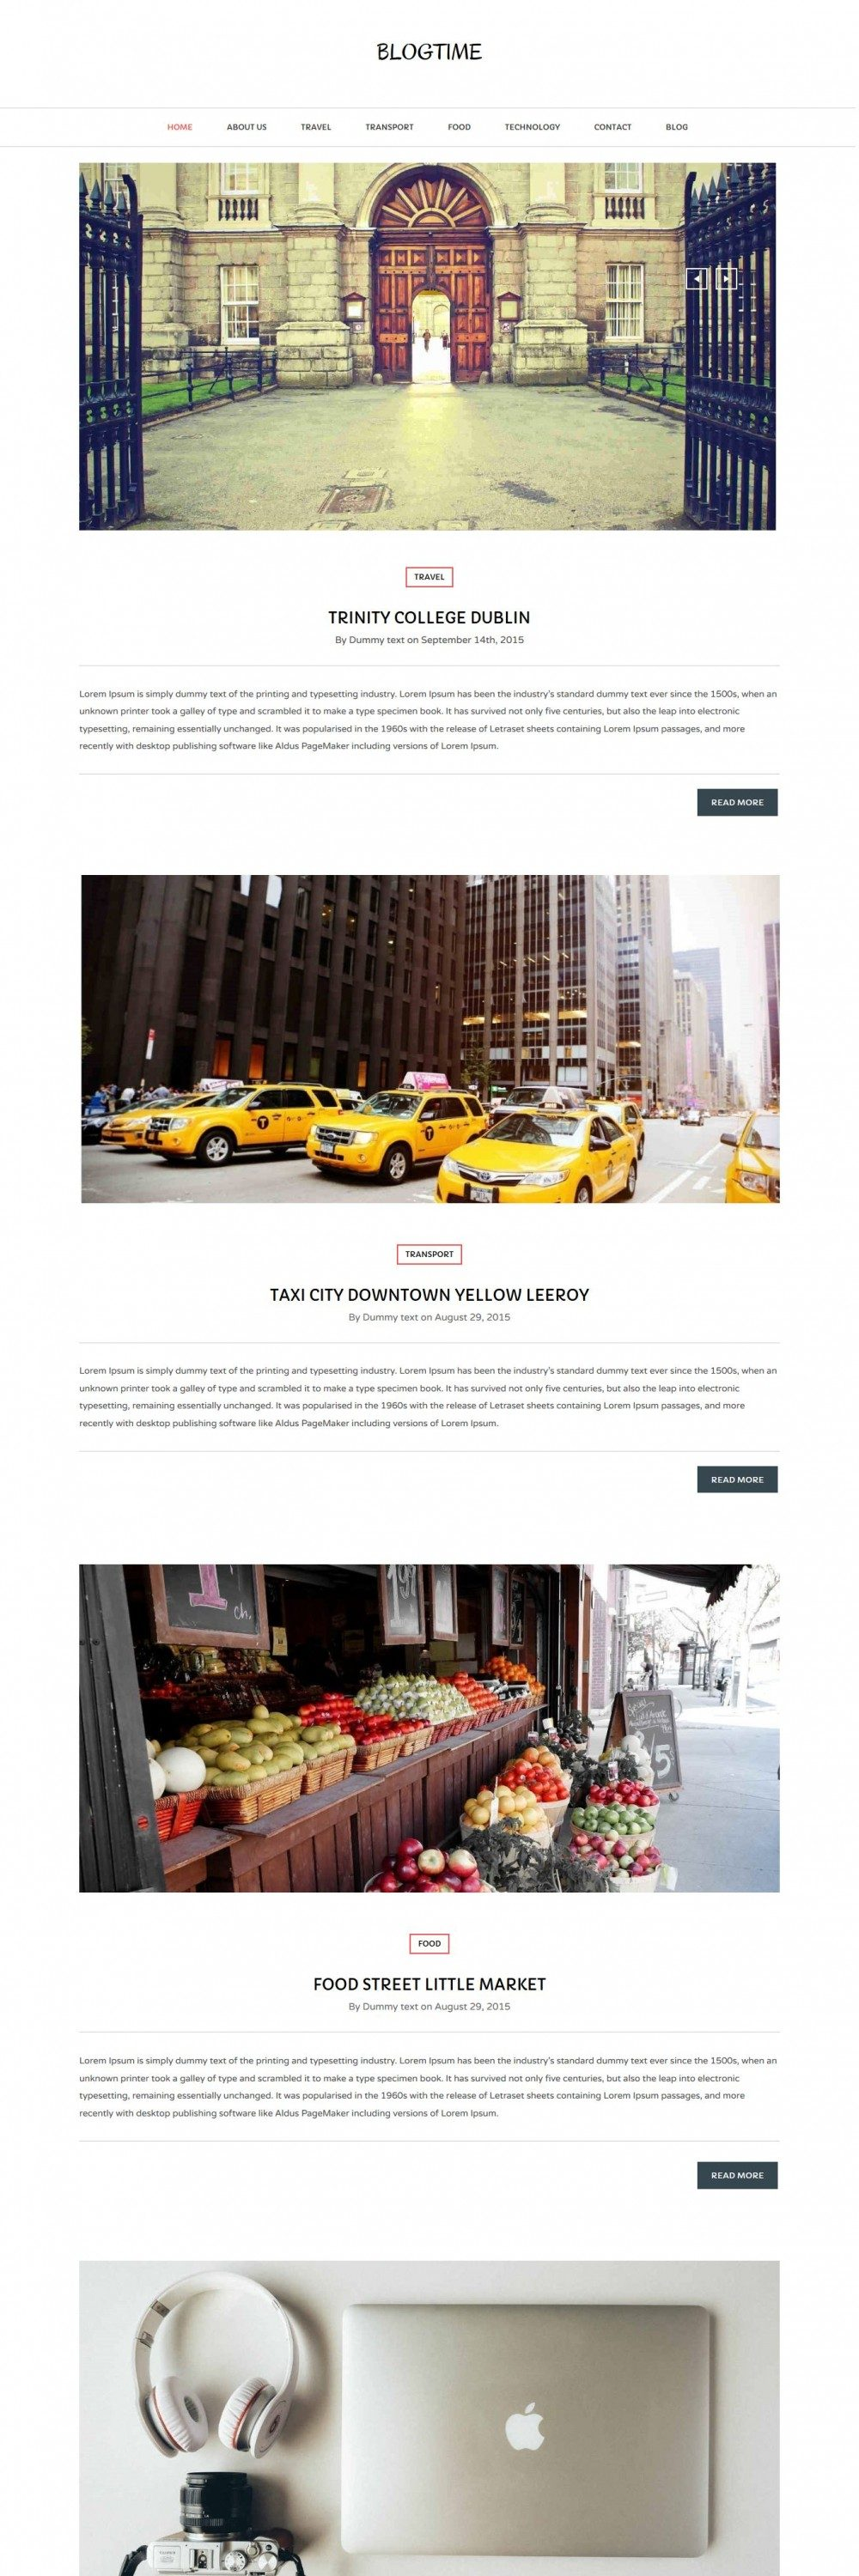 Blog Time - Drupal Theme for Blog